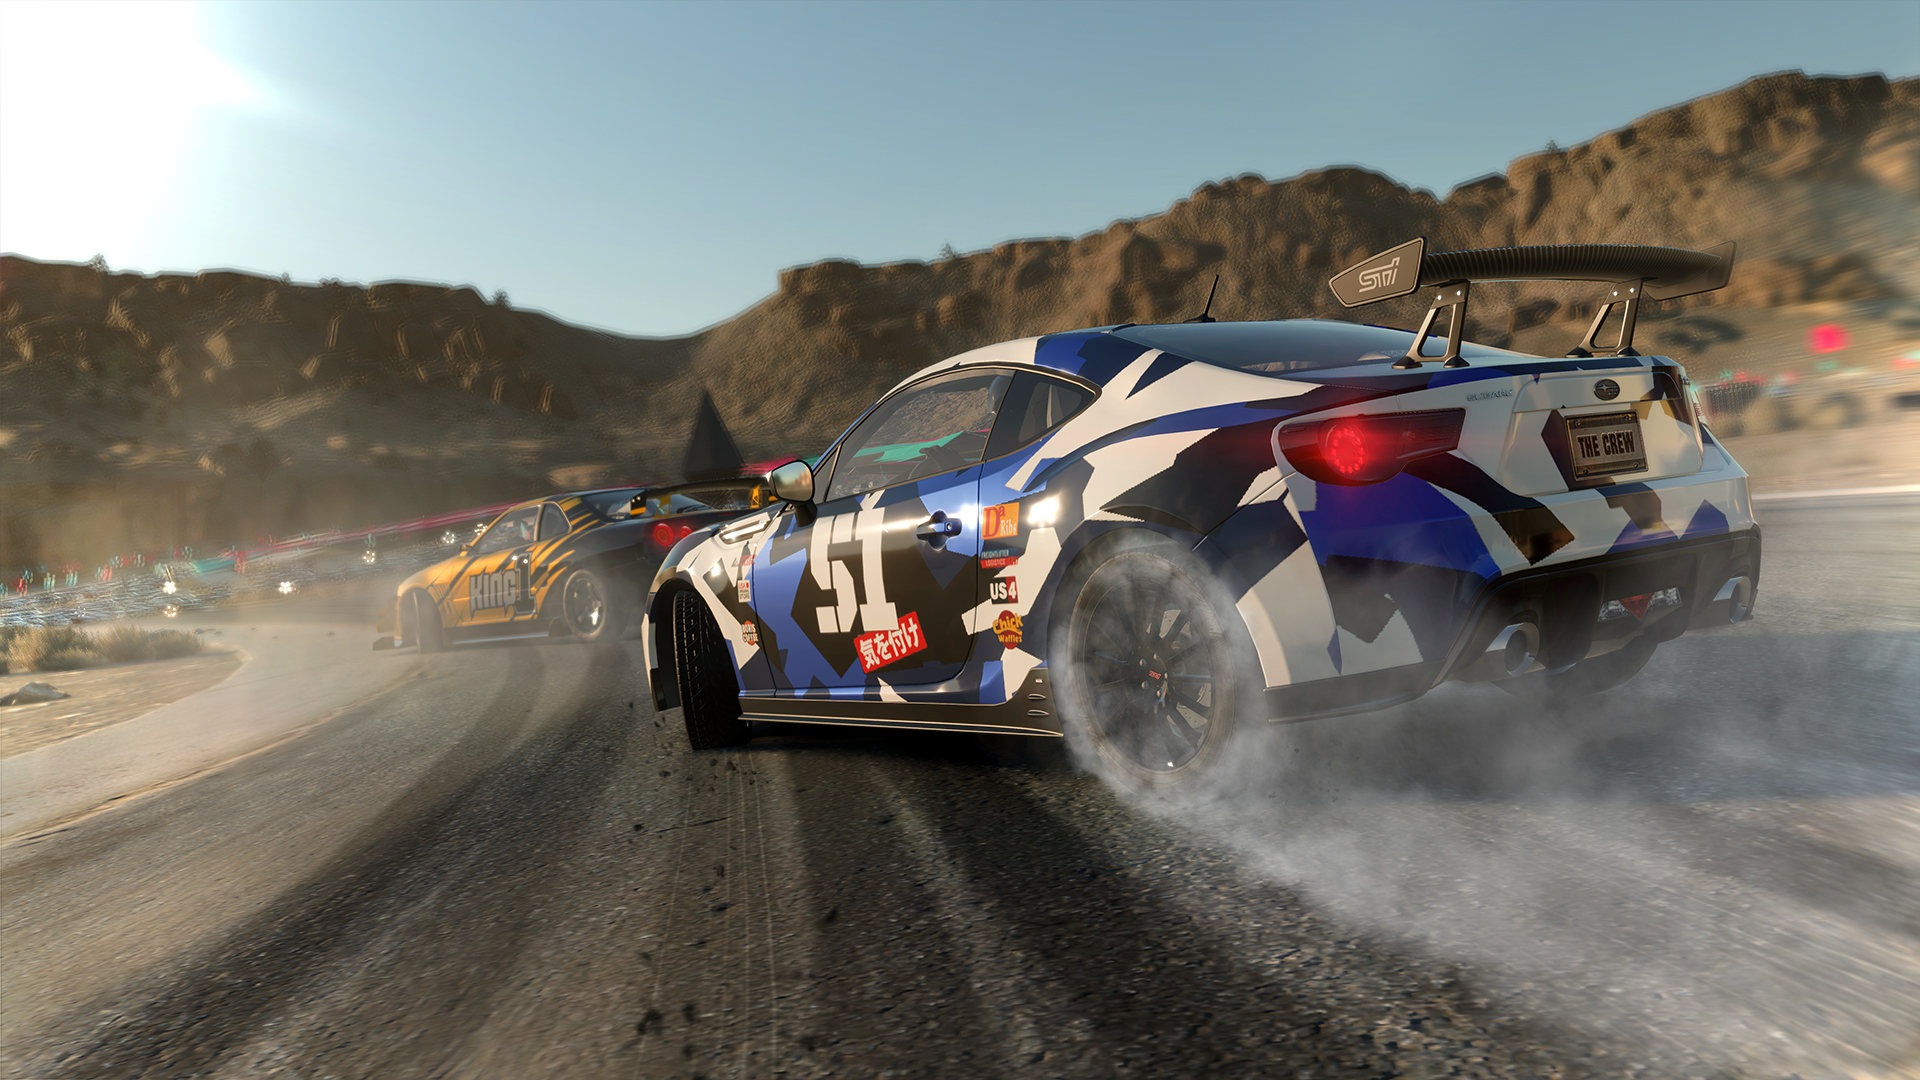 Best Racing/Driving/Simulation Games for PS4